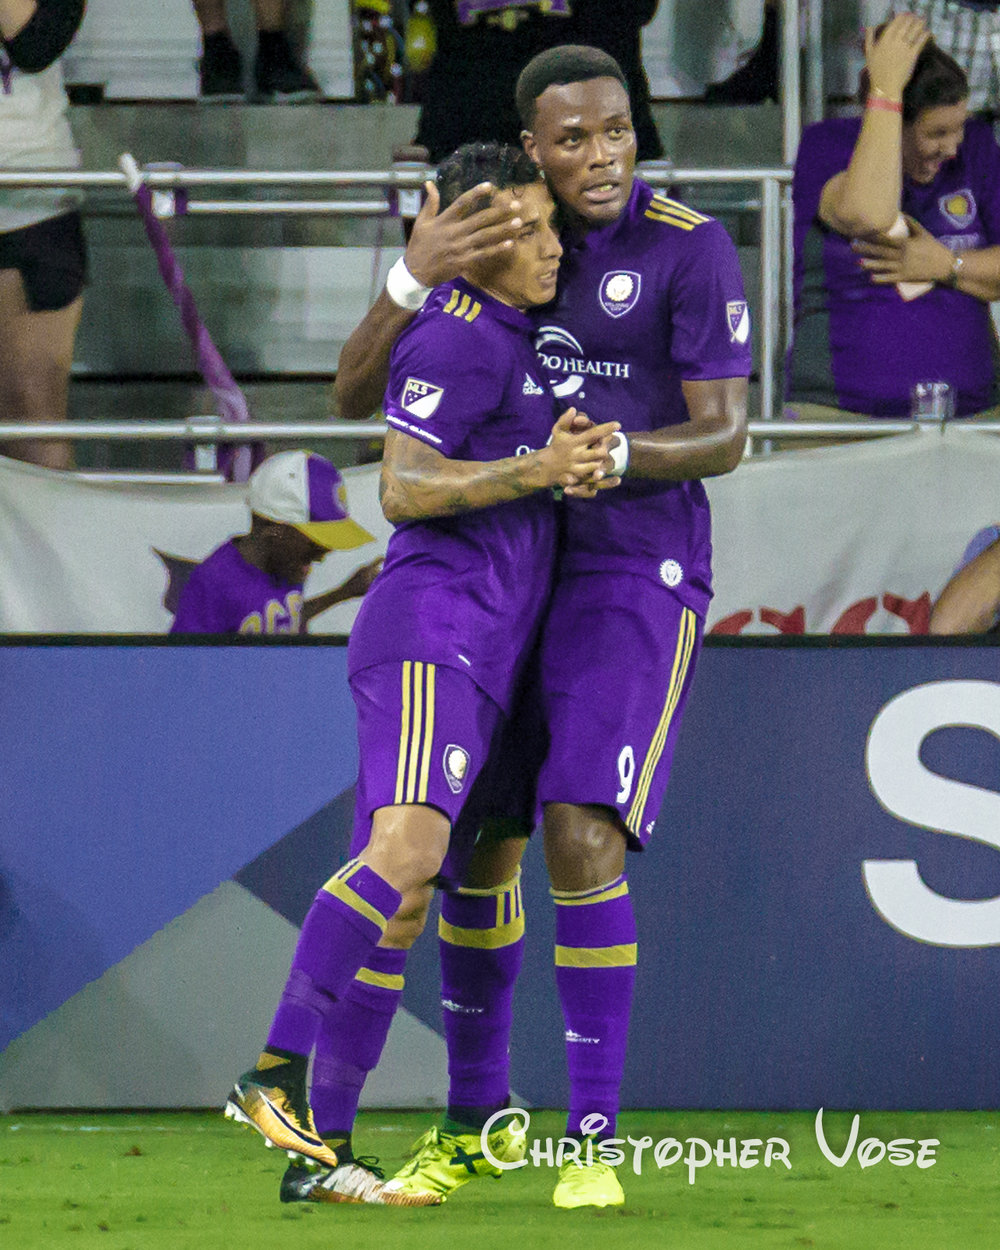 2017-08-26 Cyle Larin Goal Celebration.jpg